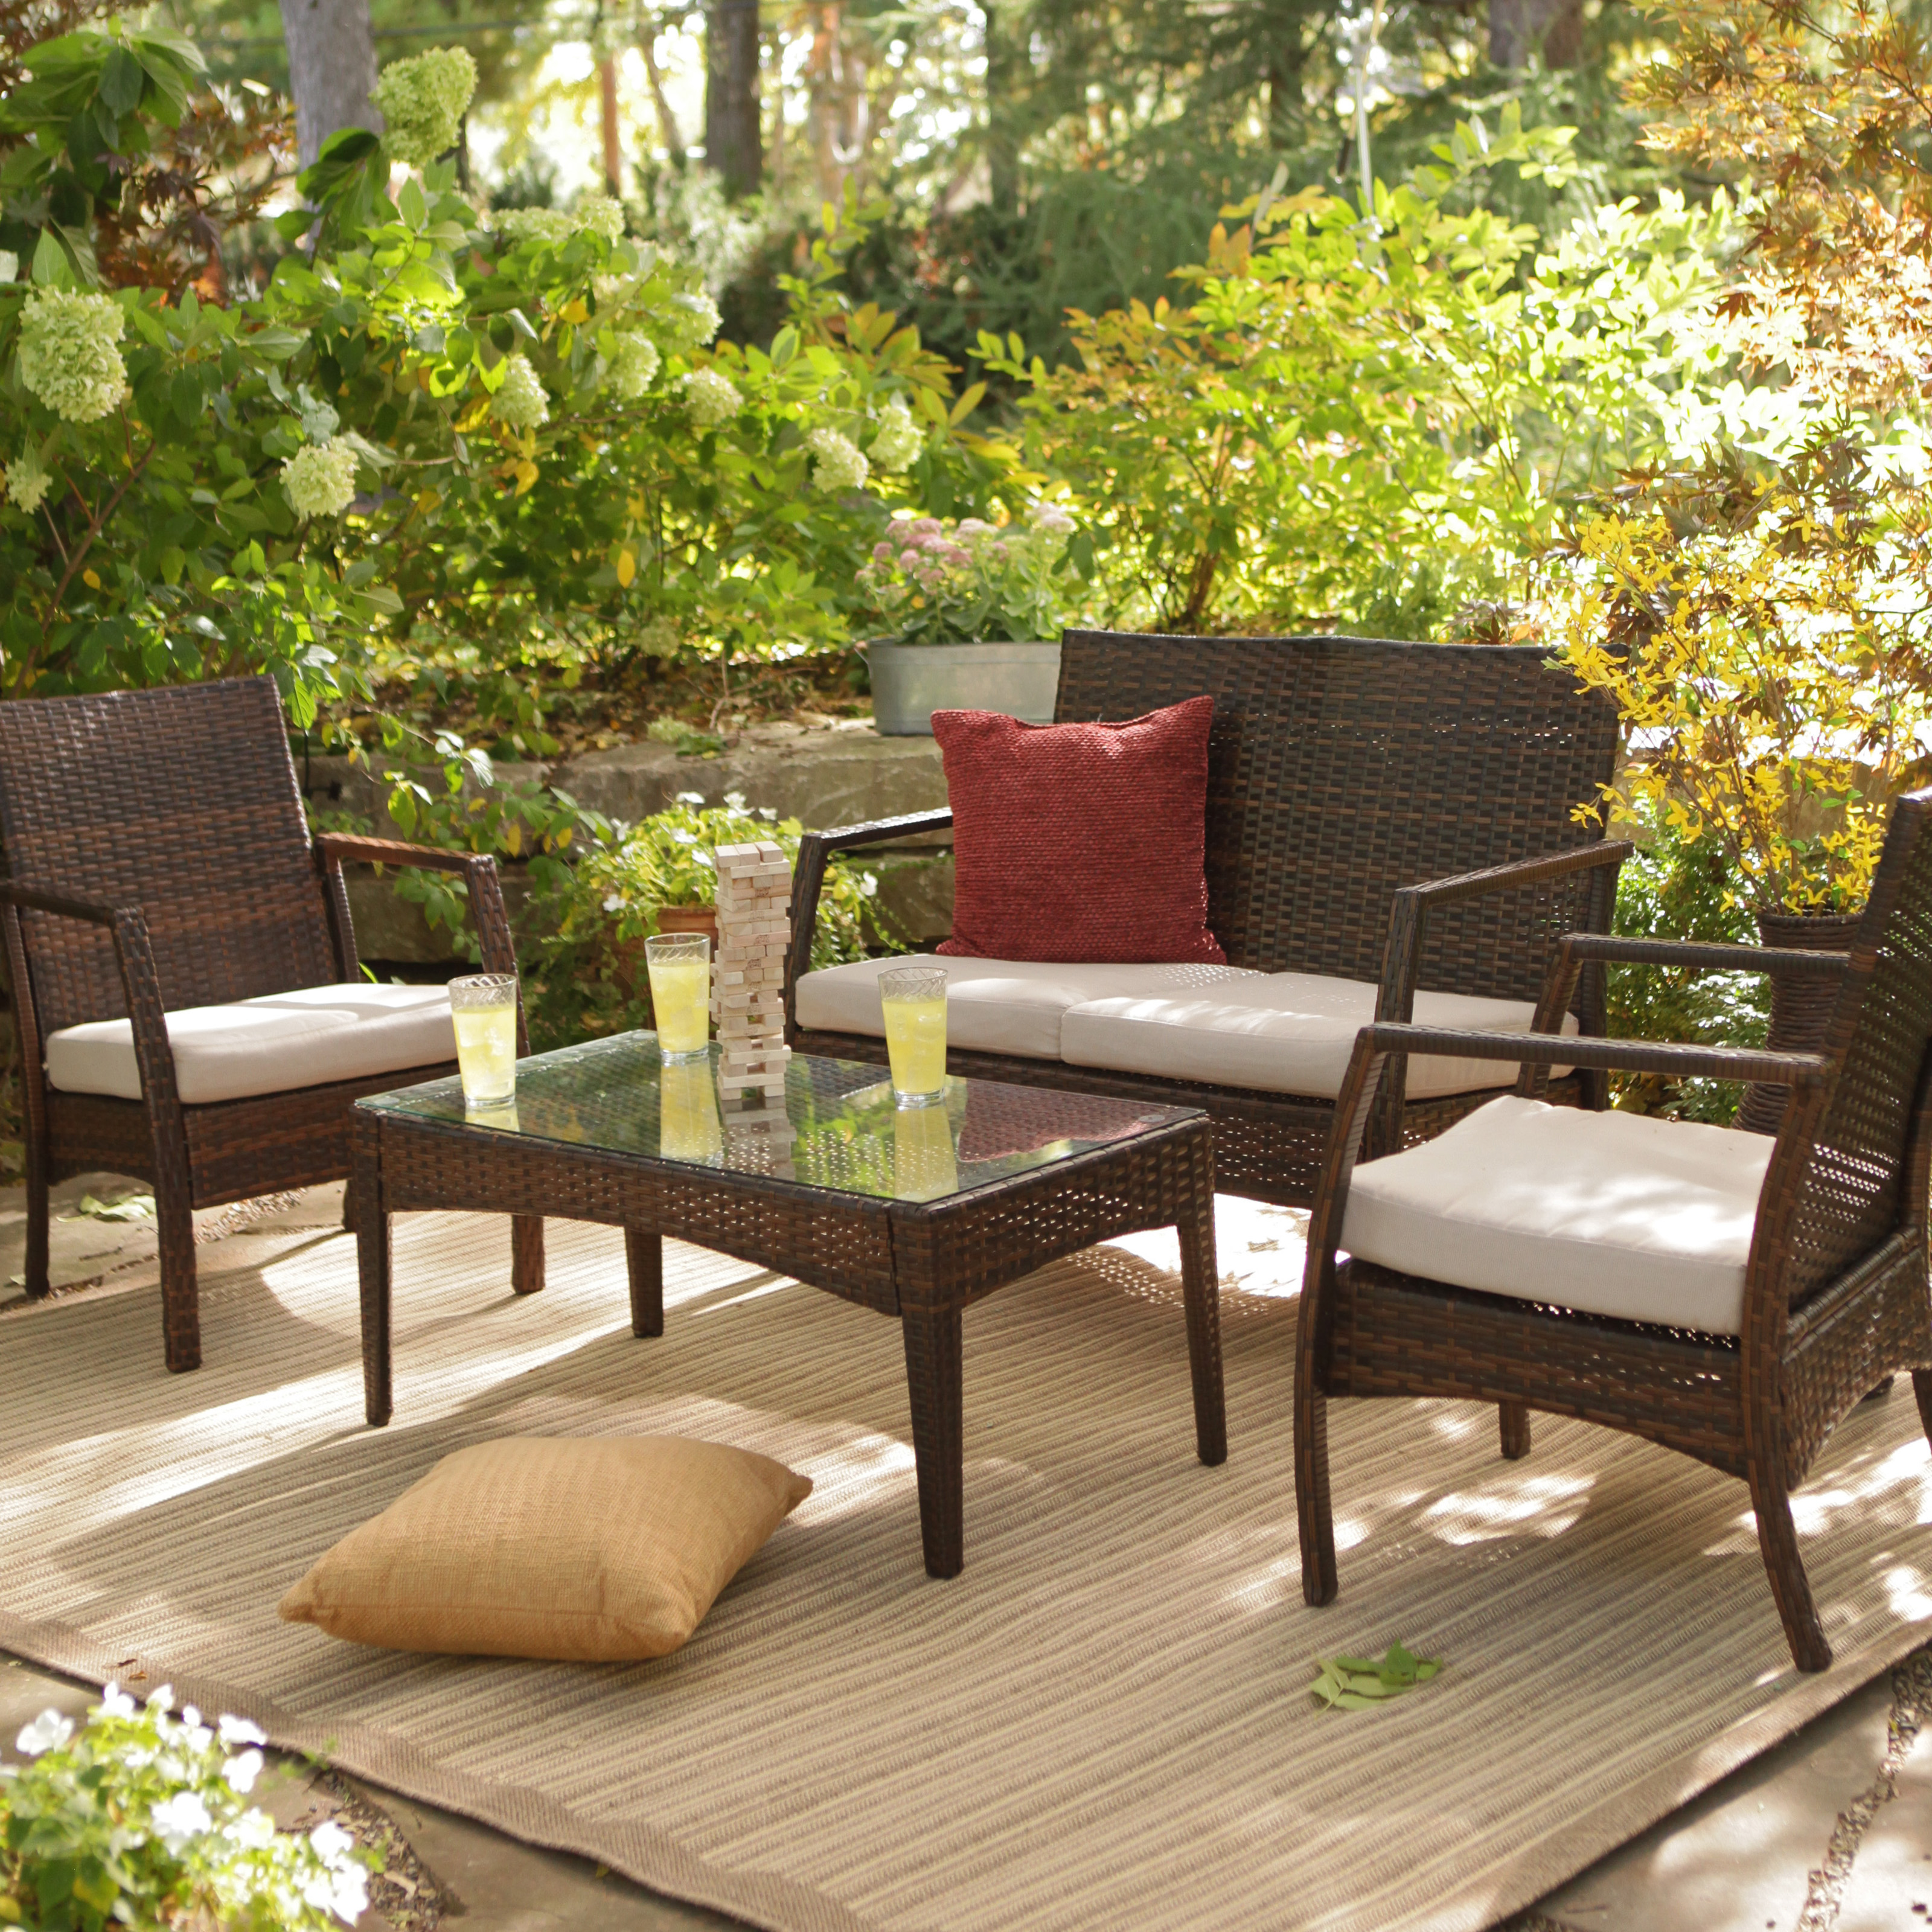 Coral Coast Parkville All Weather Wicker Conversation Set   Seats 4